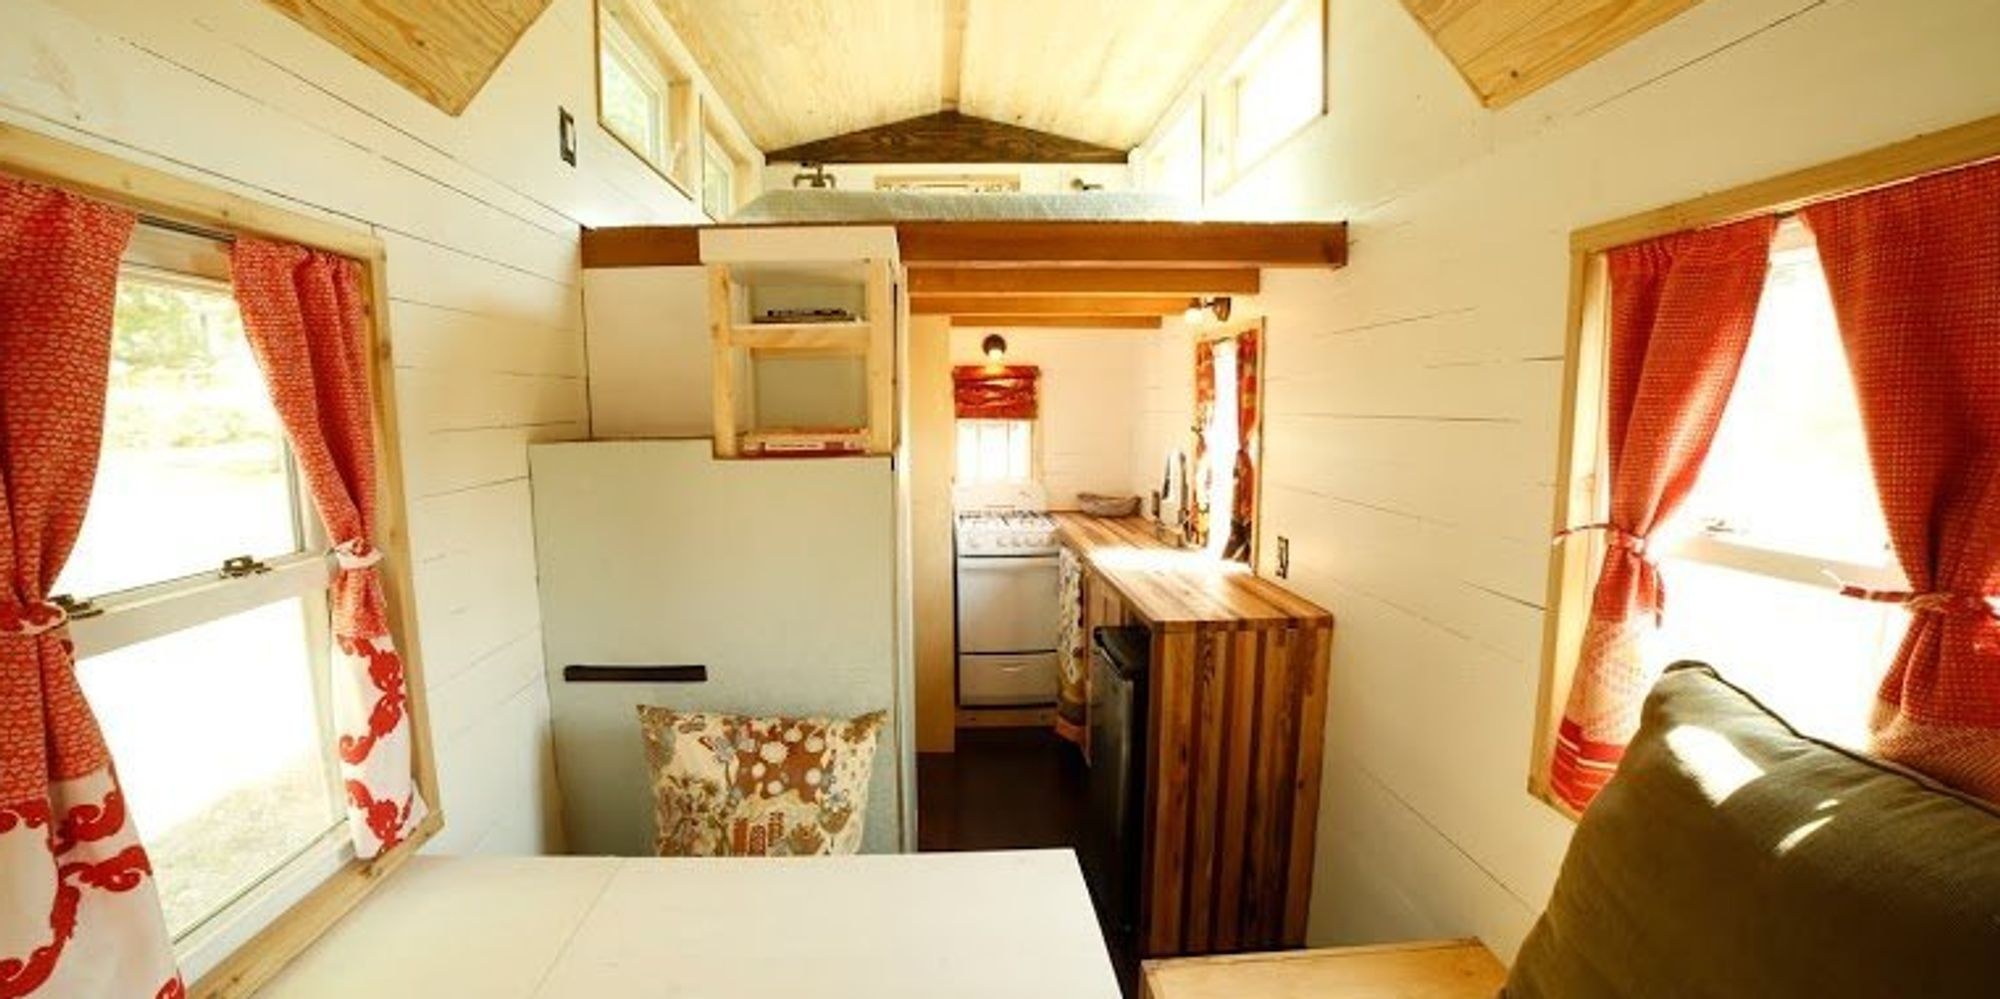 Tiny Homes Pictures Videos Breaking News